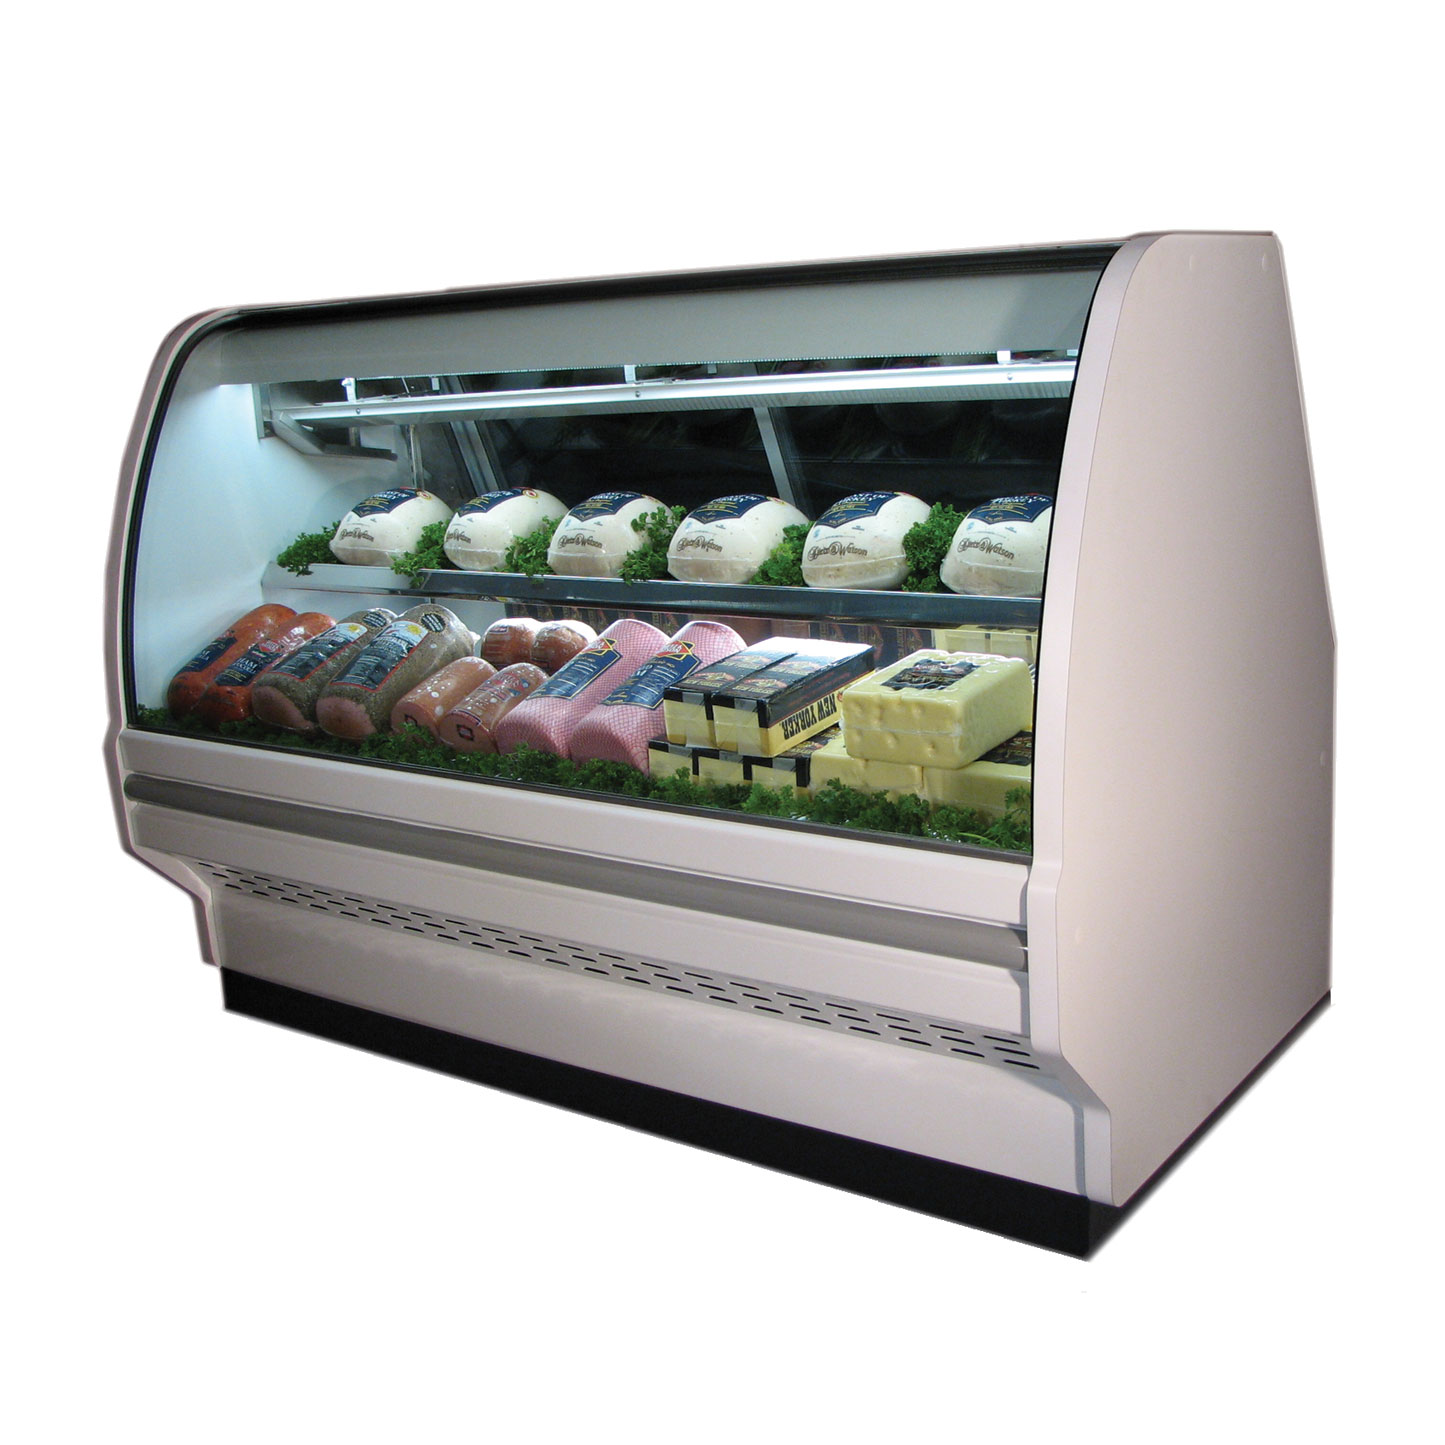 Howard-McCray R-CDS40E-6C-LED display case, refrigerated deli